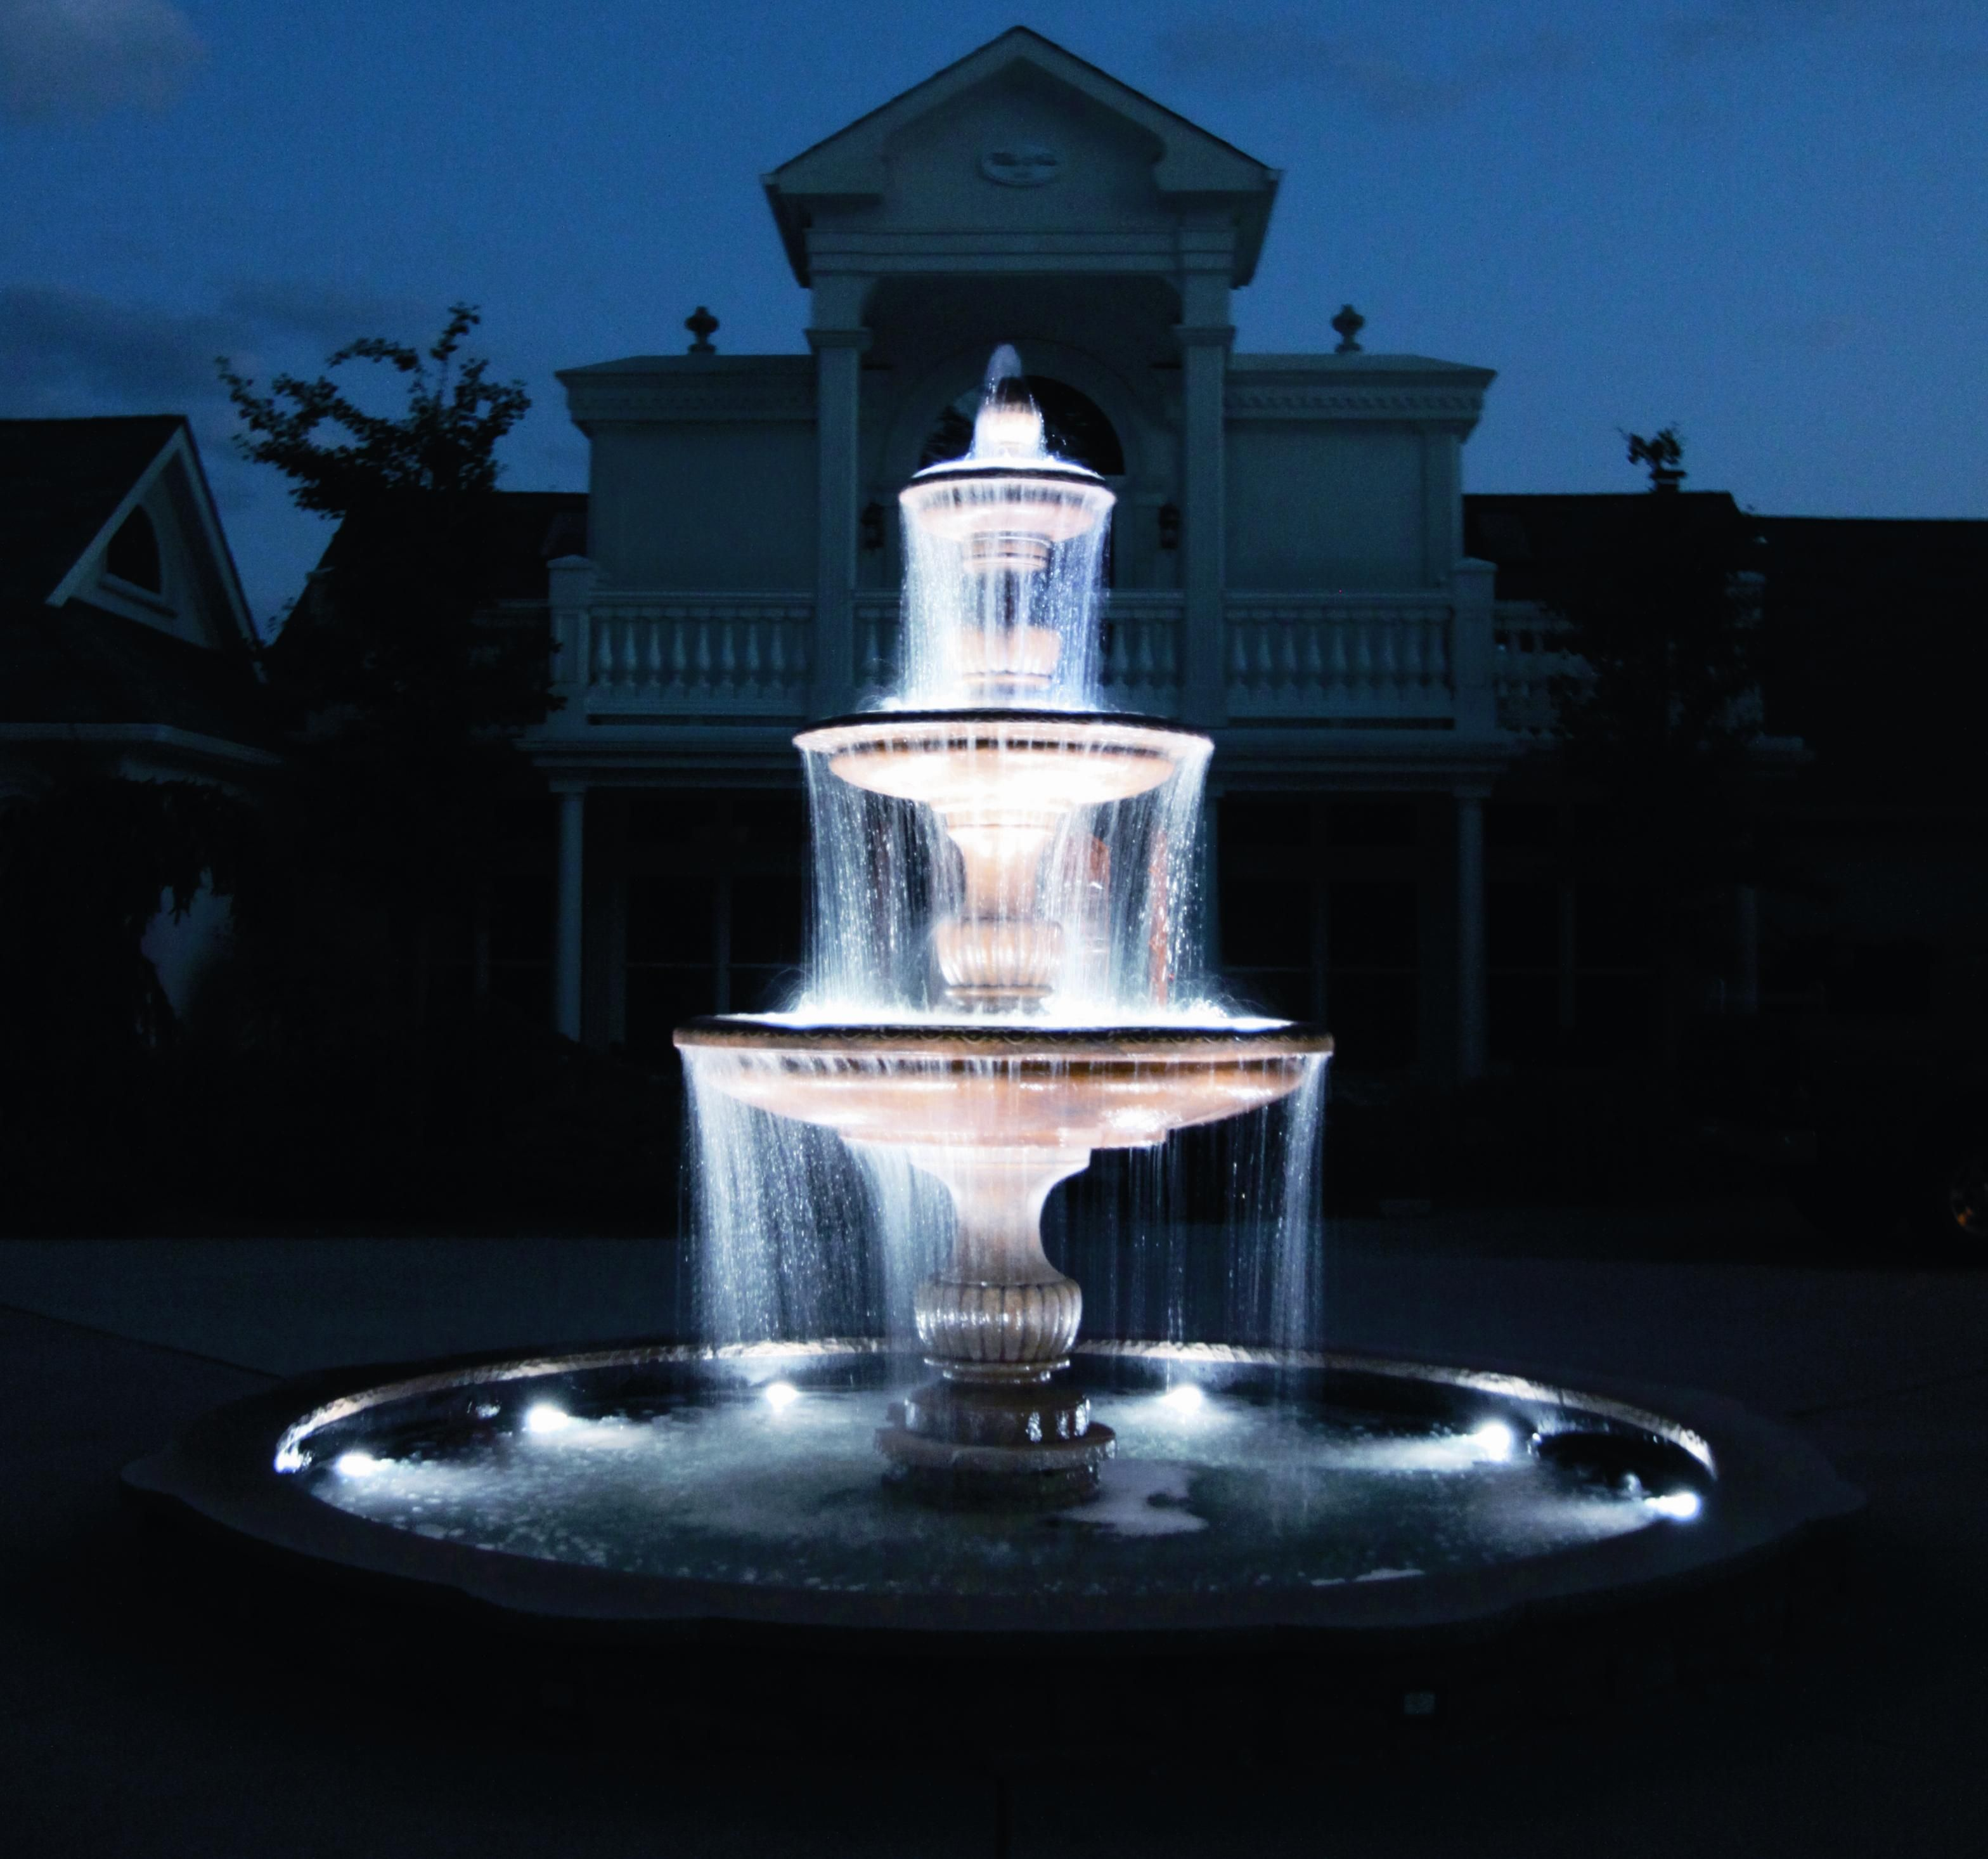 Superieur A Lighted Fountain Would Be Life!